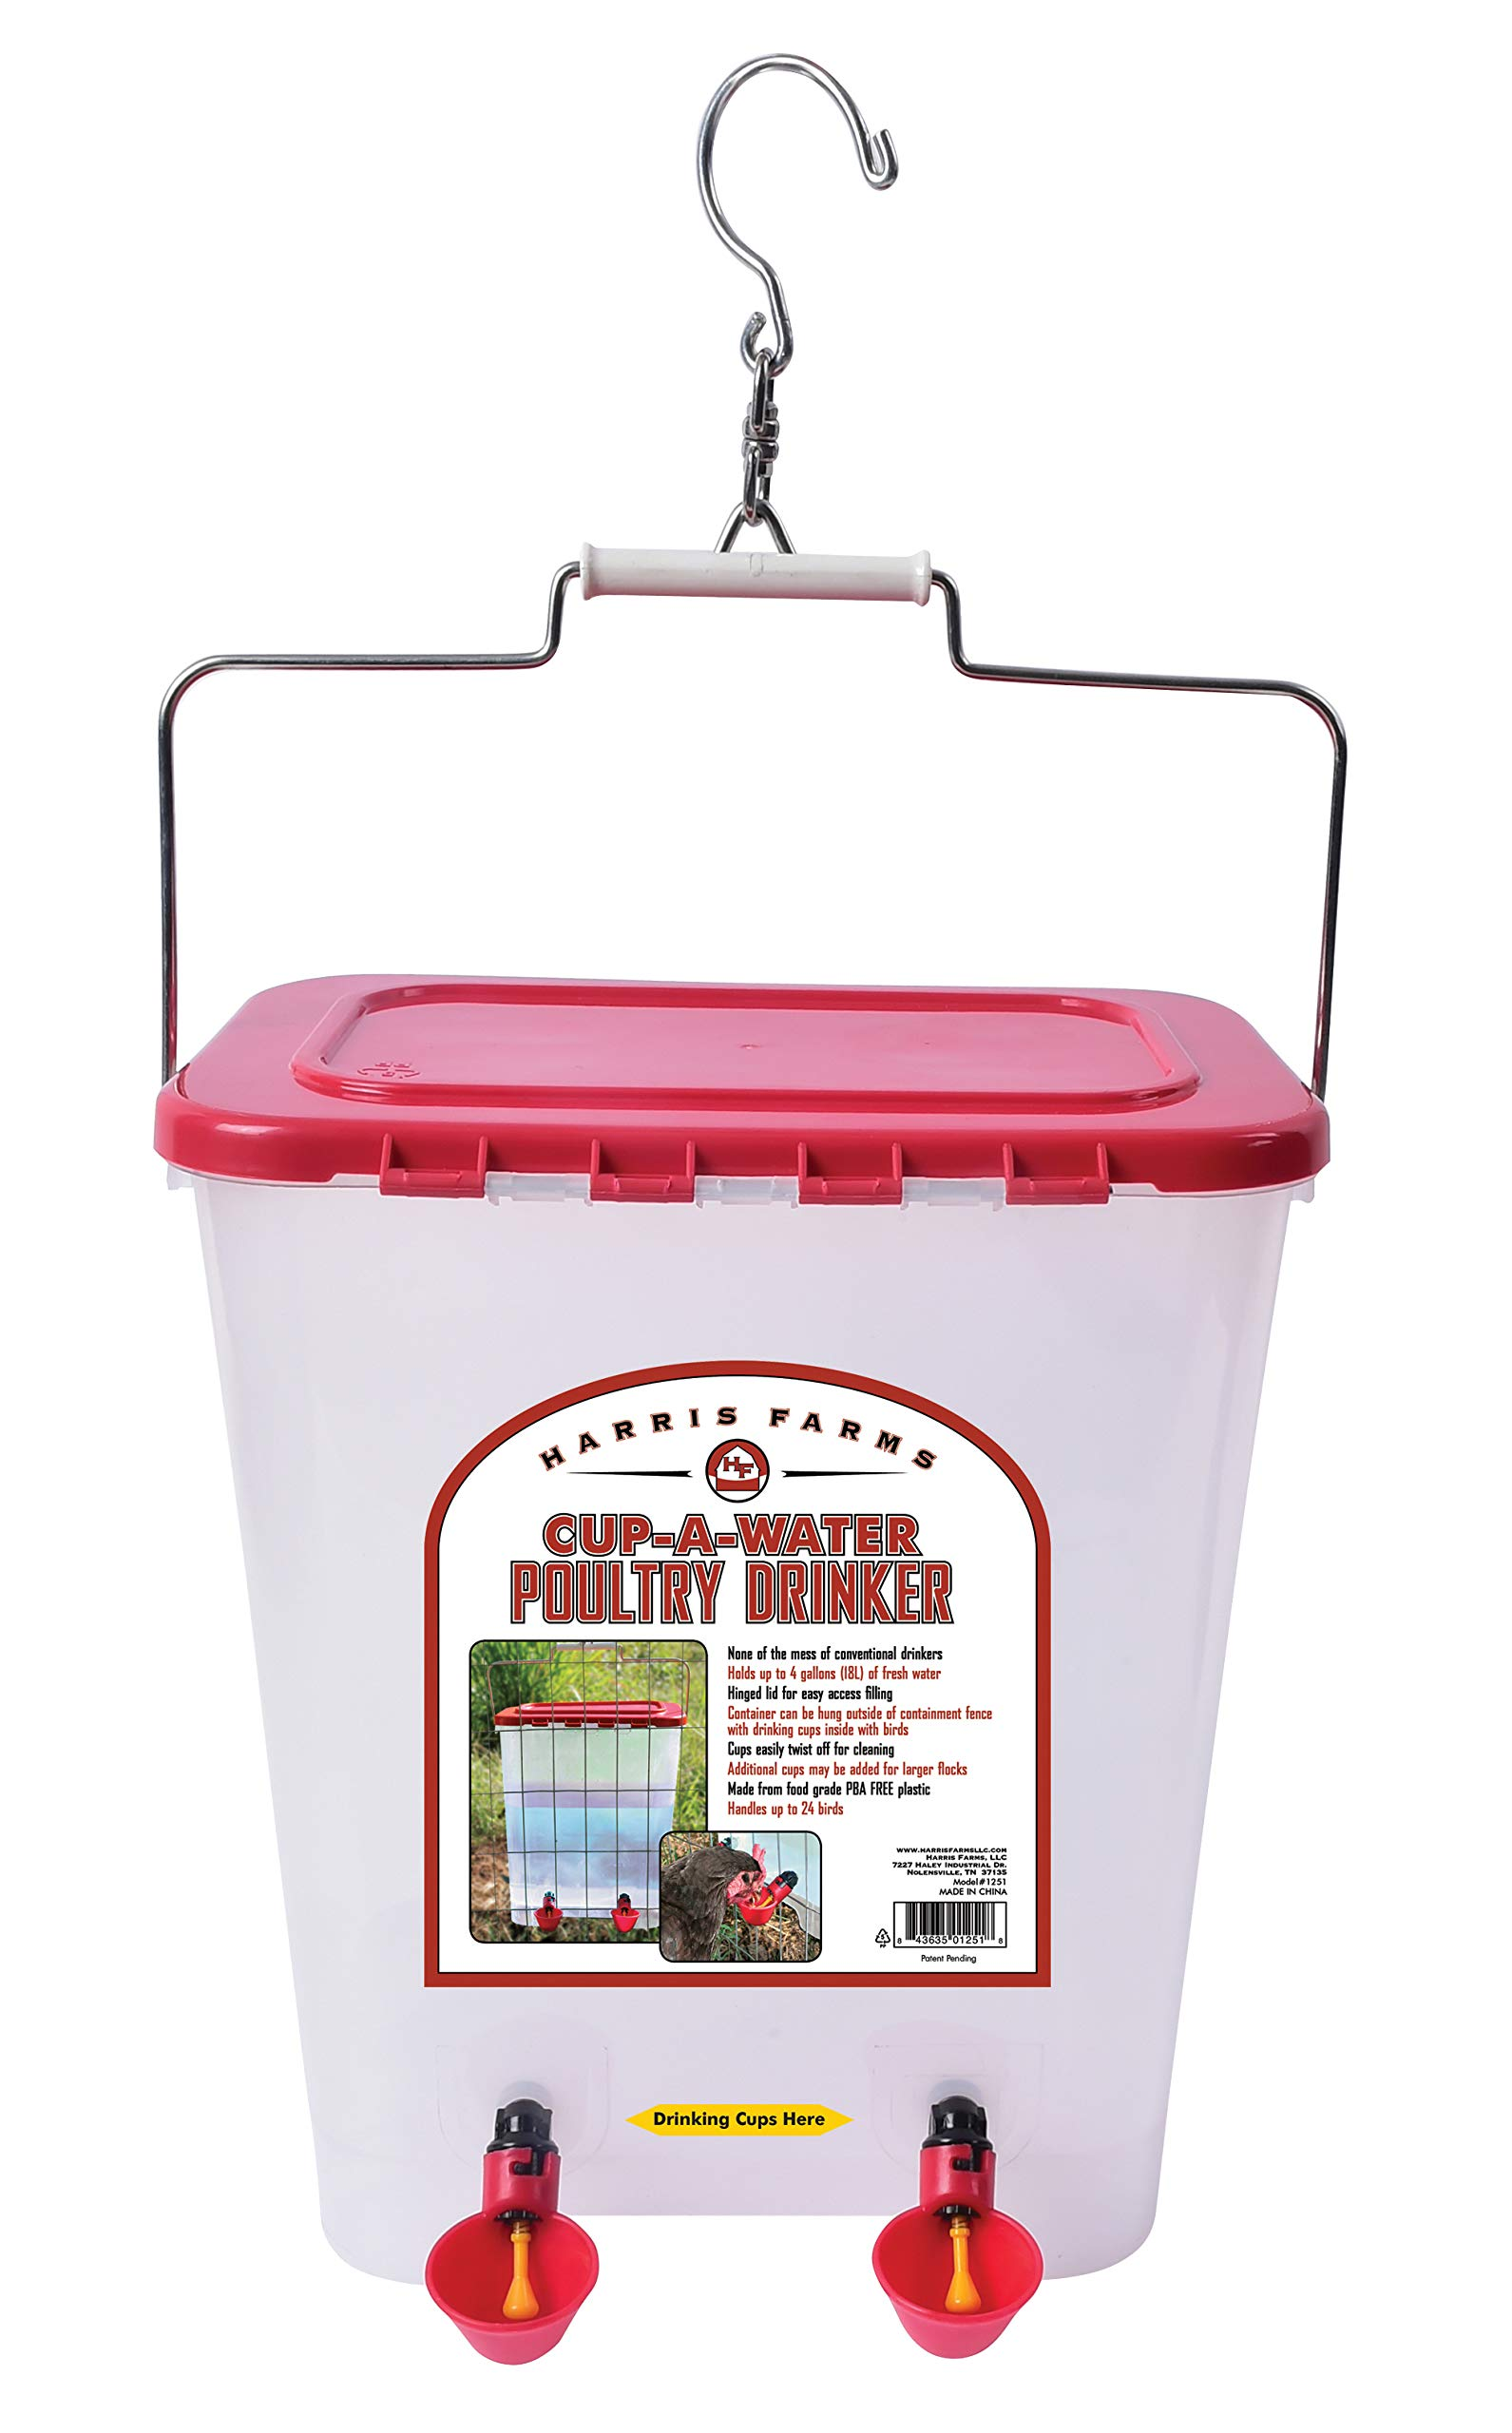 Harris Farms Cup-A-Water Poultry Drinker, 4 gallon